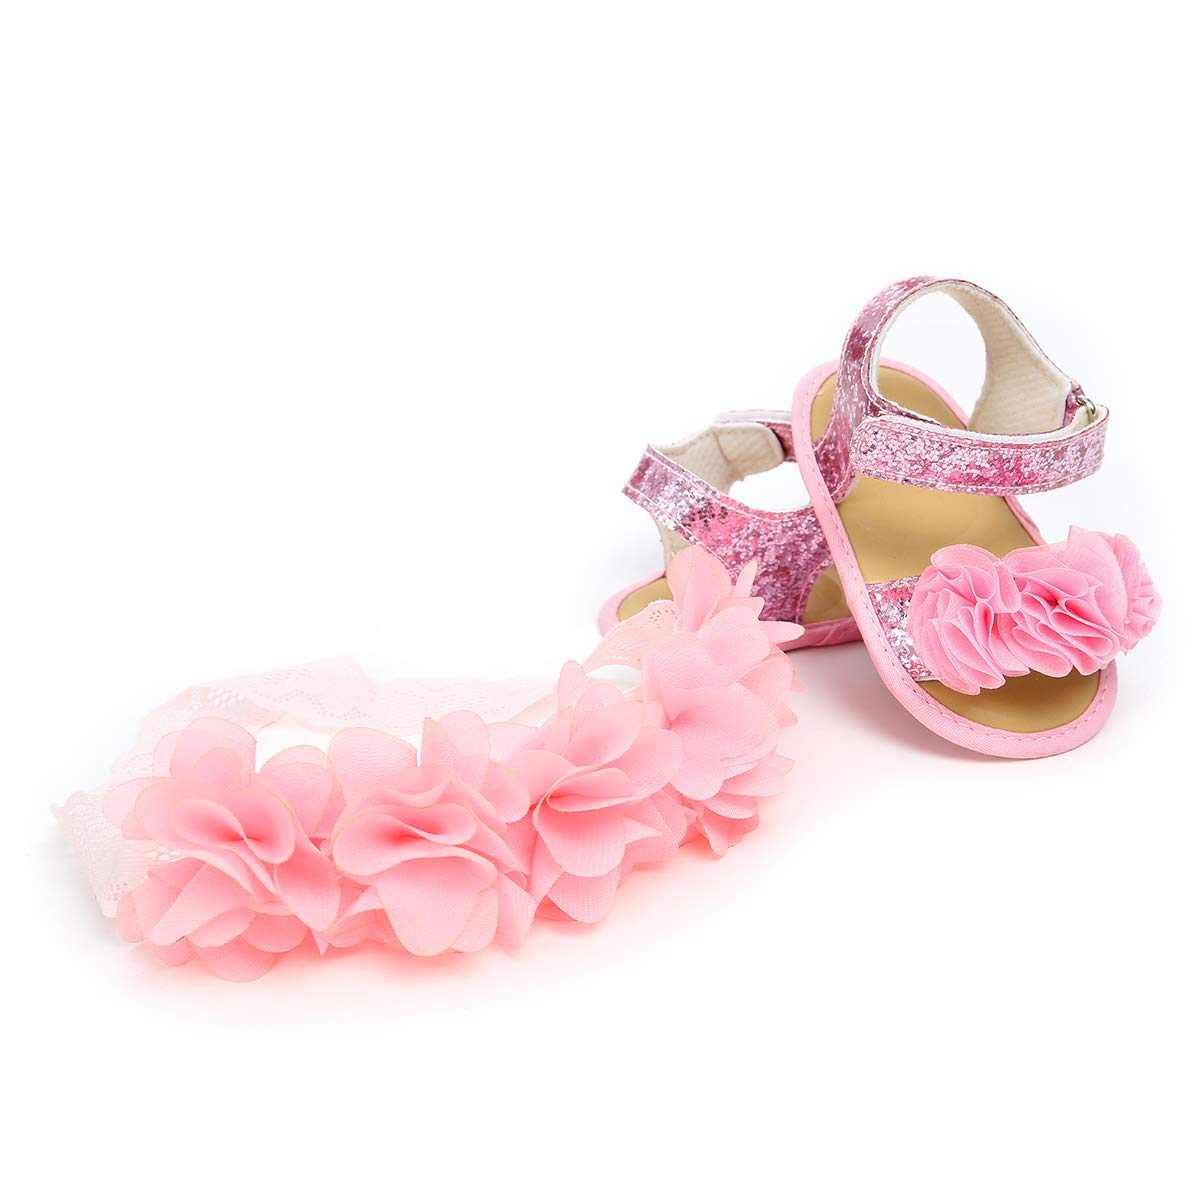 Ohwawadi Infant Baby Girl Shoes Baby Mary Jane Flats Princess Wedding Dress Shoes Crib Shoe for Newborns, Infants, Babies, and Toddlers